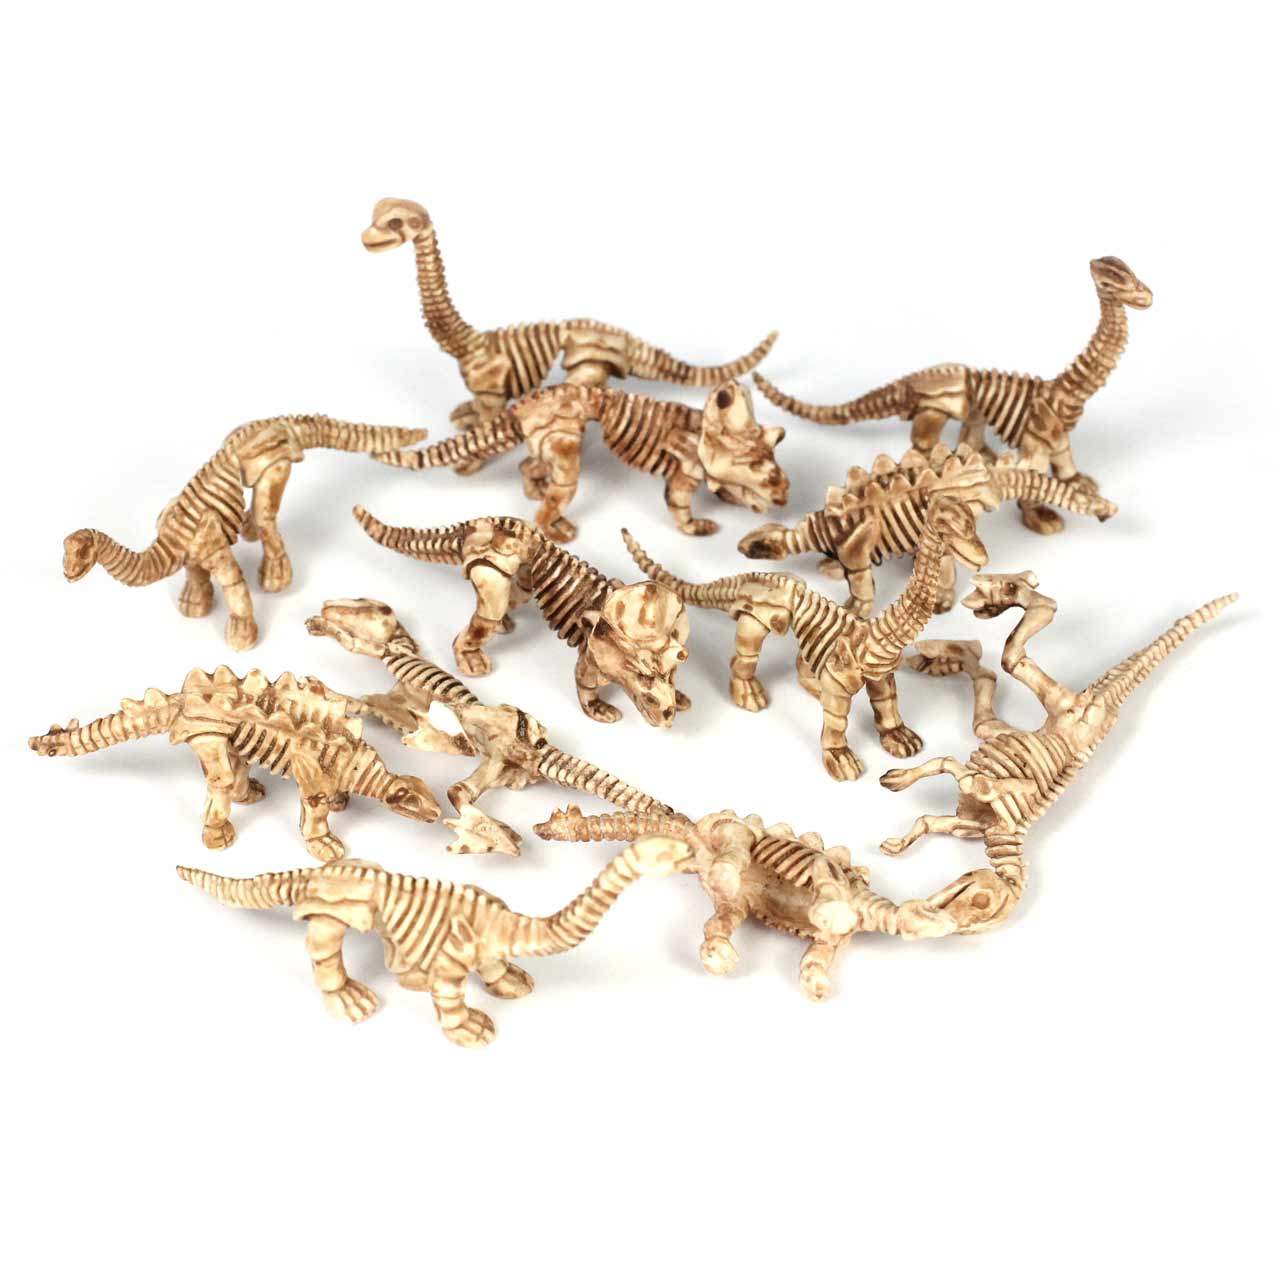 Dinosaur Skeleton Small Counting and Matching Set (102 Pieces)